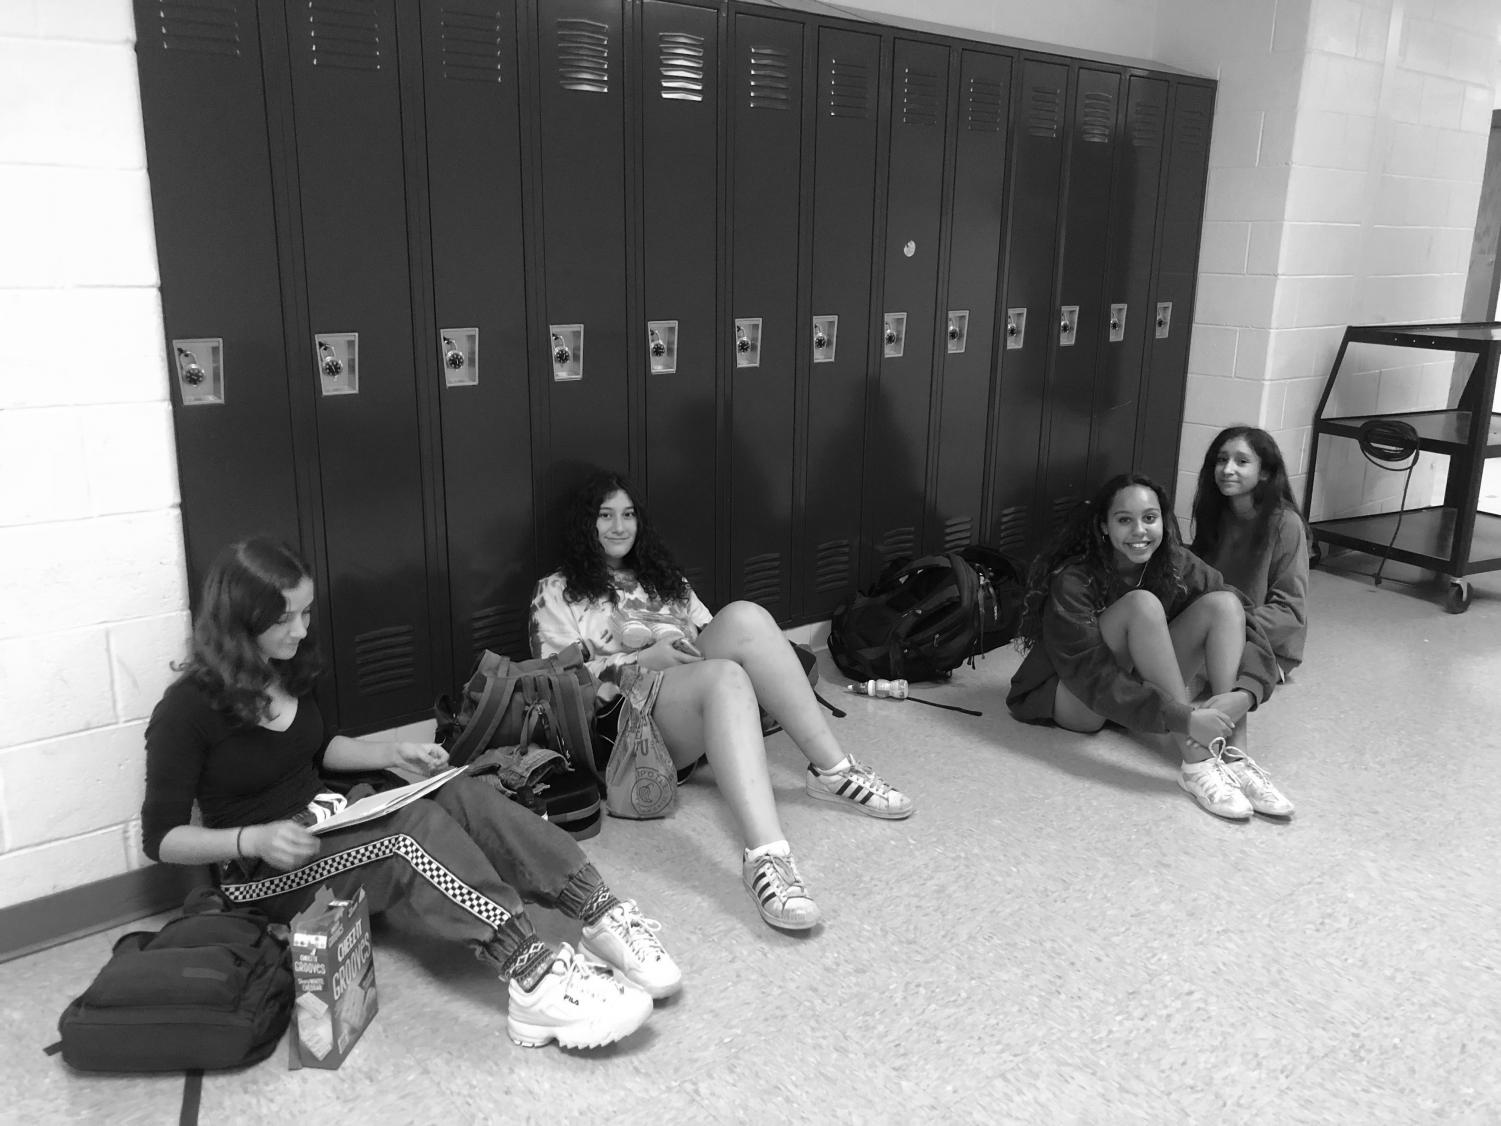 Junior Christine Vassel, freshman Sarah Lawerence, sophomores Jessica Vincent and Valeria Guillen talk and work on homework while waiting to get into their team room before practice.